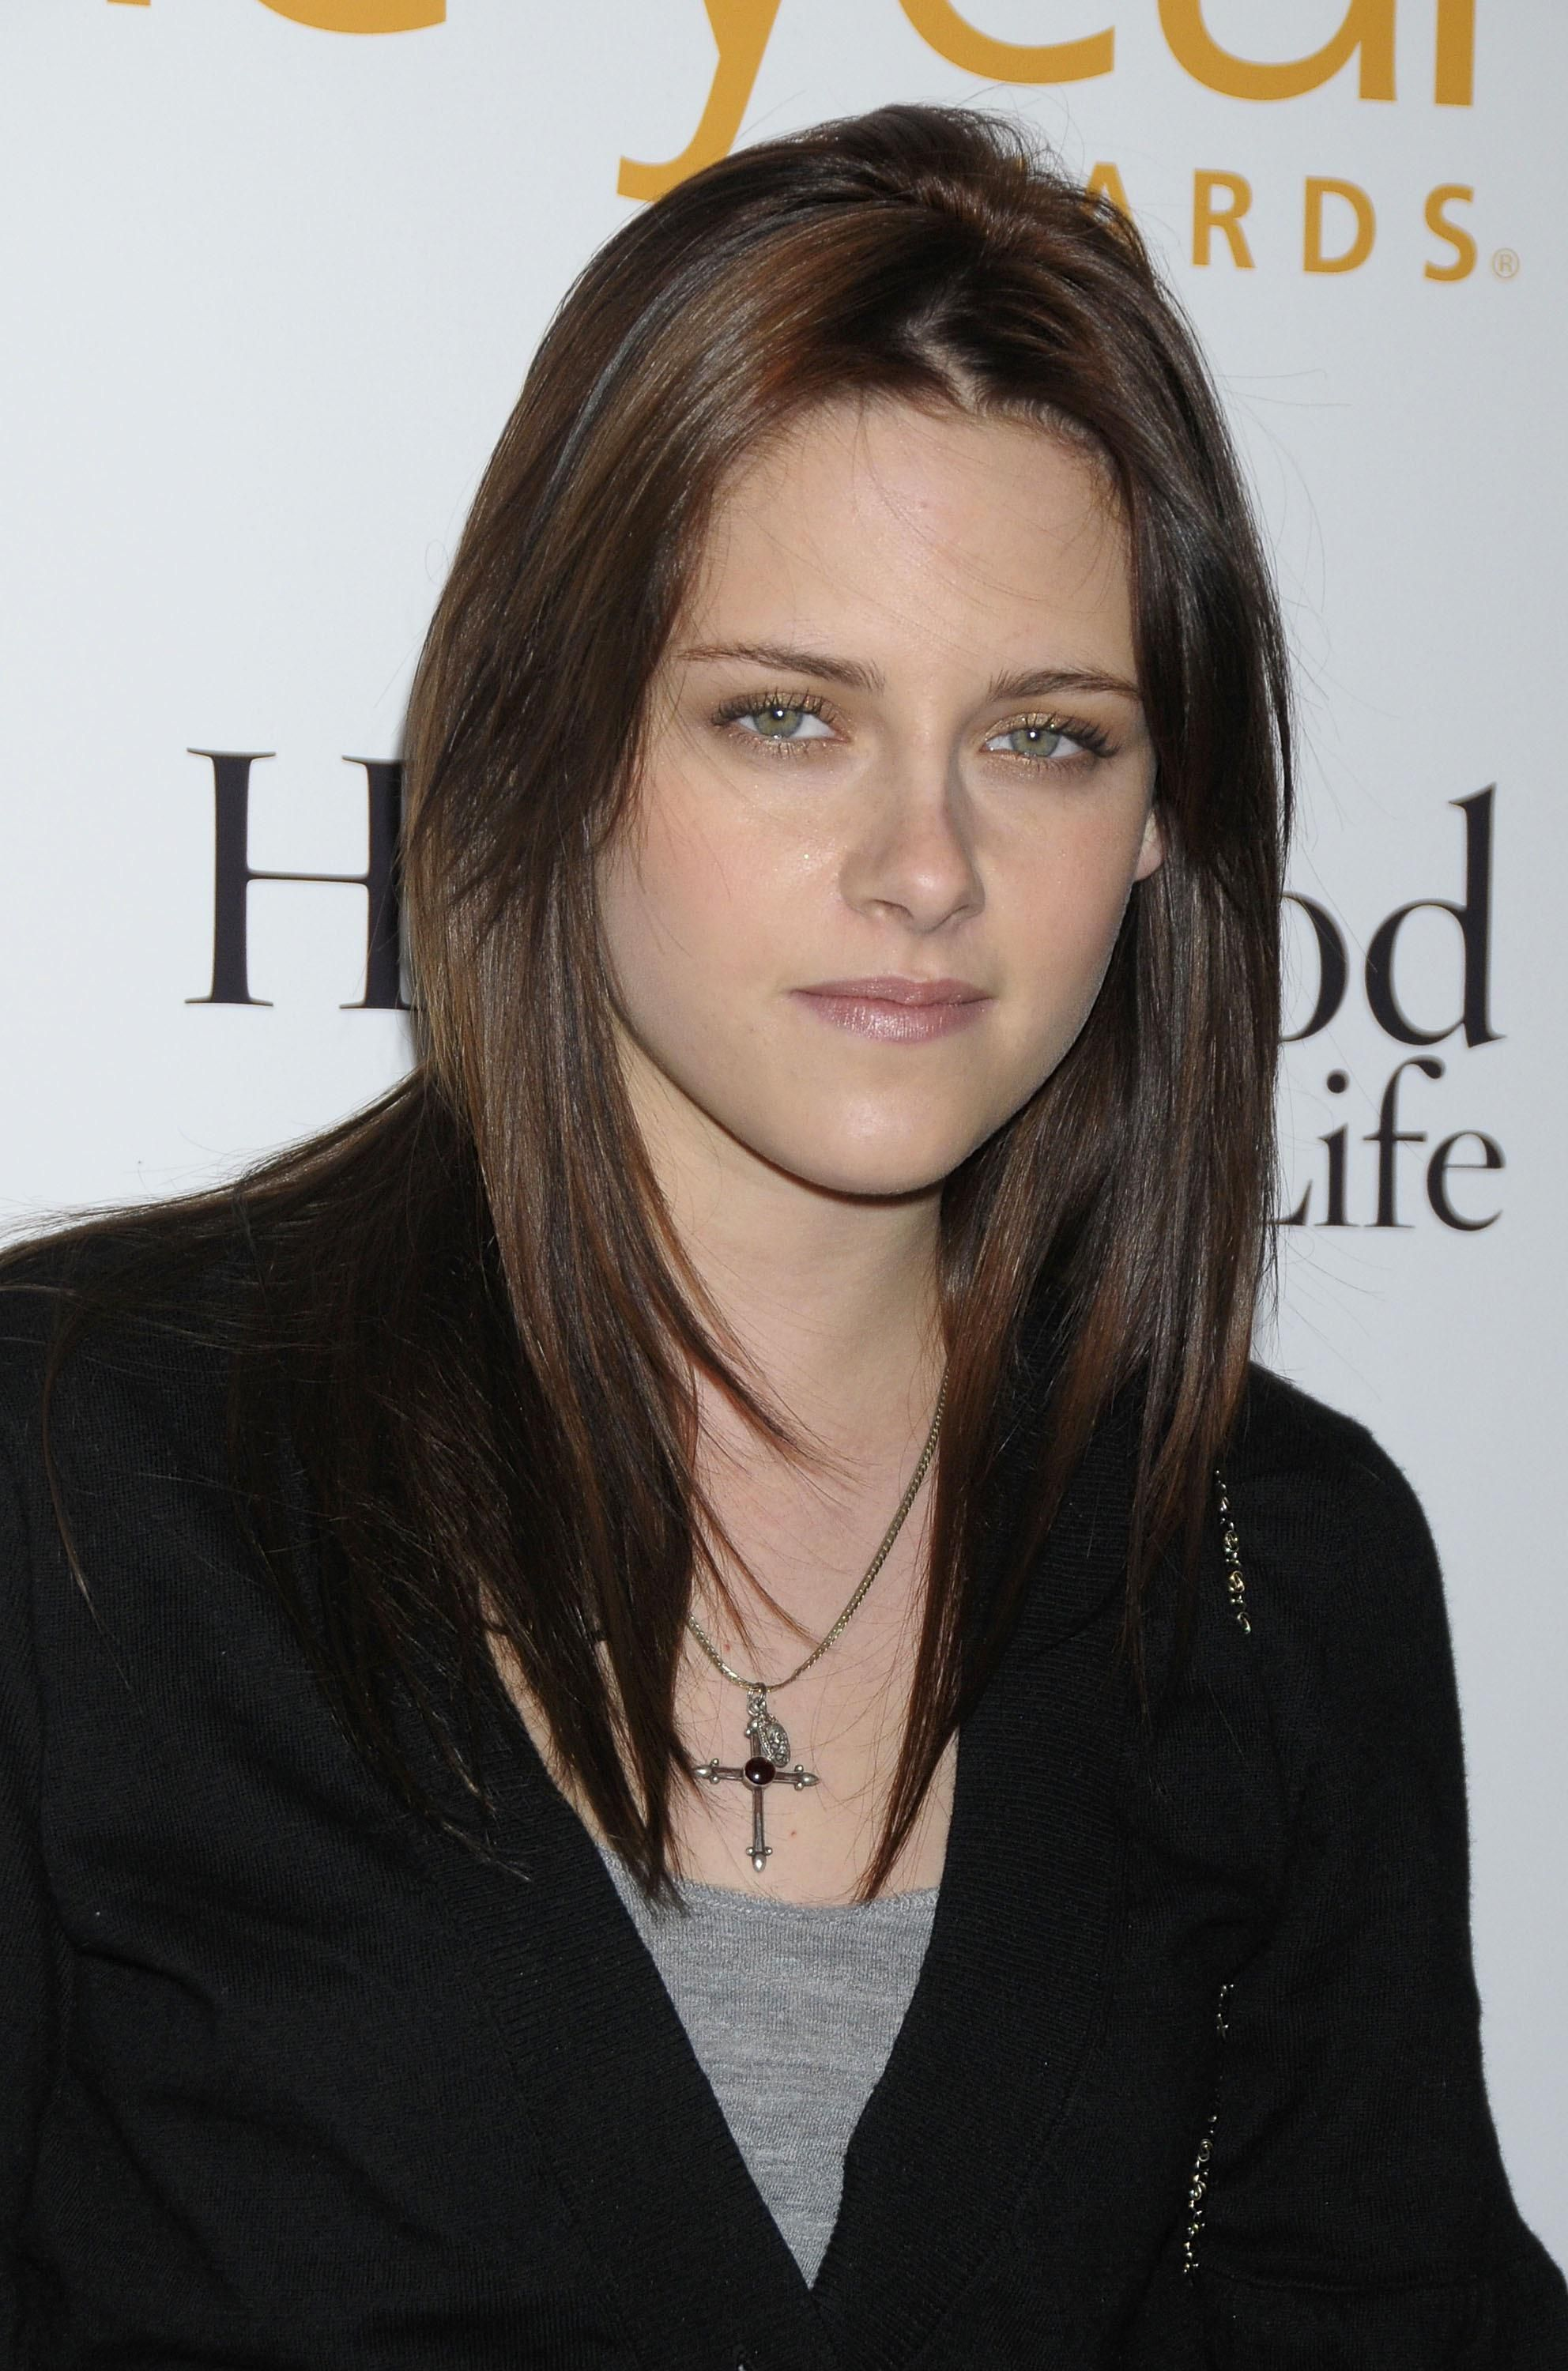 17 I Love Her Eyes And Everything Kristen Stewart Kristen Stewart Hair Kristin Stewart